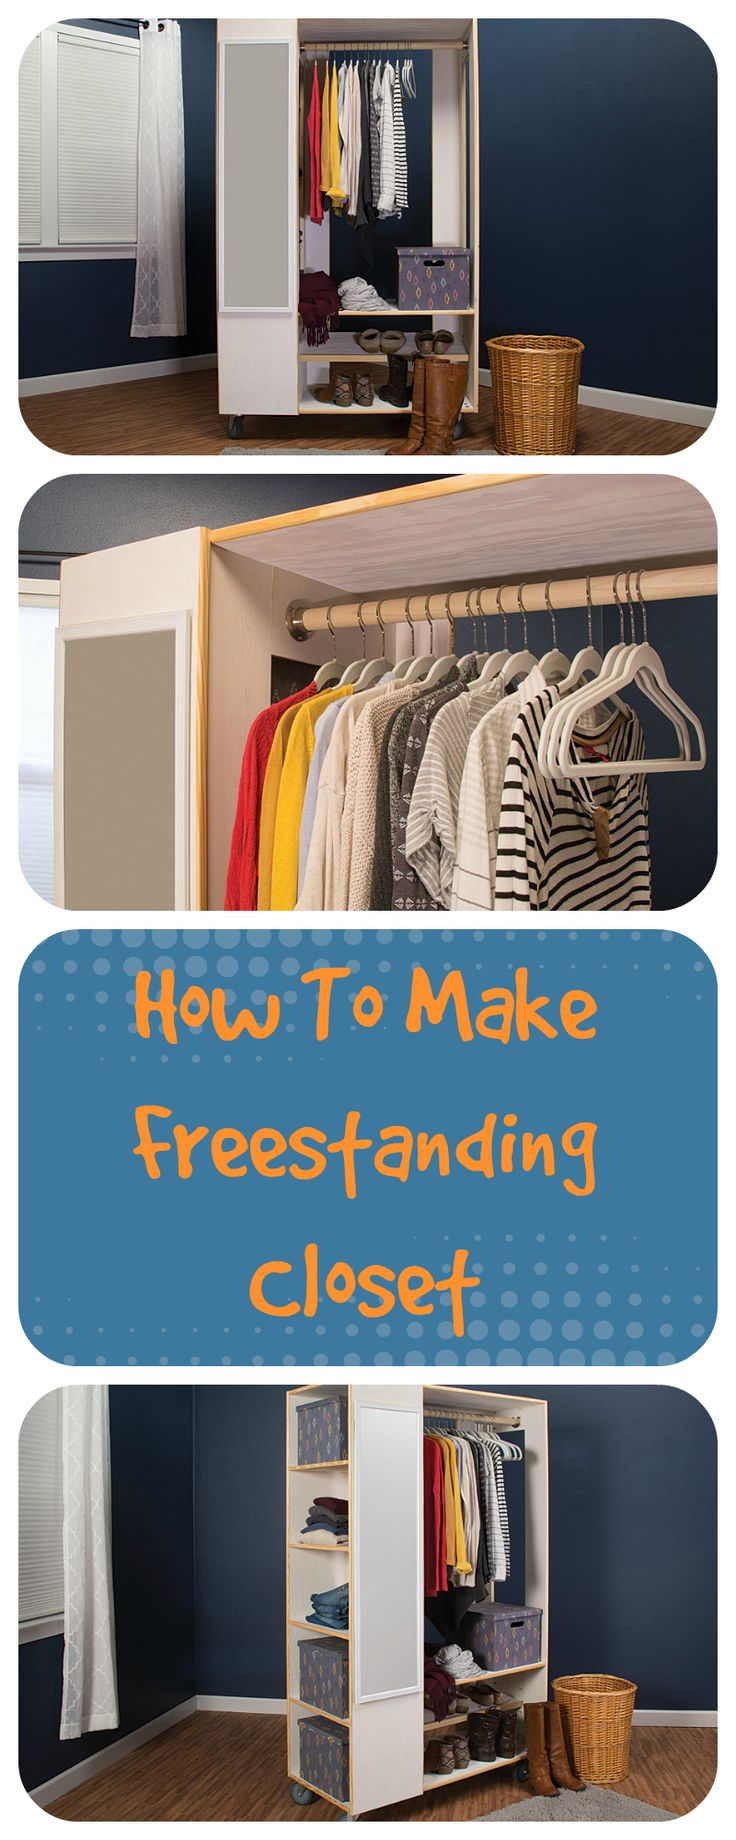 Your Wife Would Love This Extra Closet Space. Find This Pin And More On DIY  By Handymate. How To Make Freestanding Closet